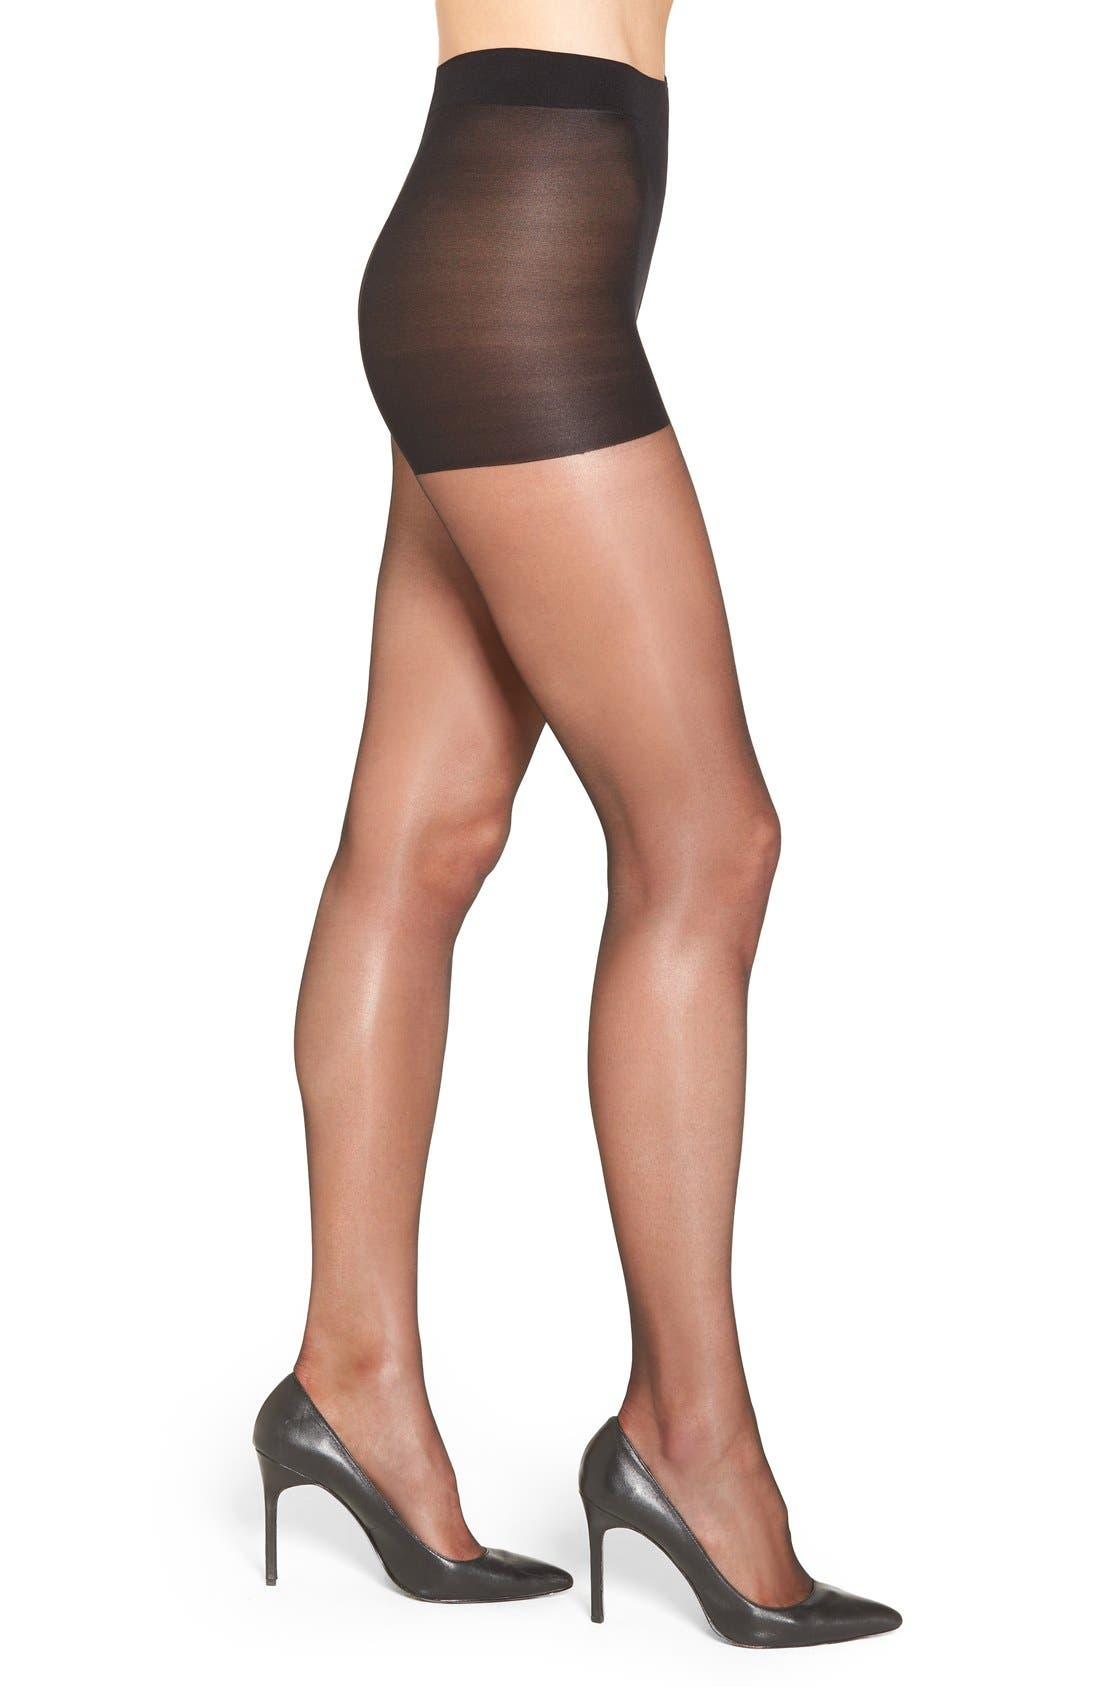 Alternate Image 1 Selected - Nordstrom 'Gloss' Control Top Pantyhose (3 for $36)